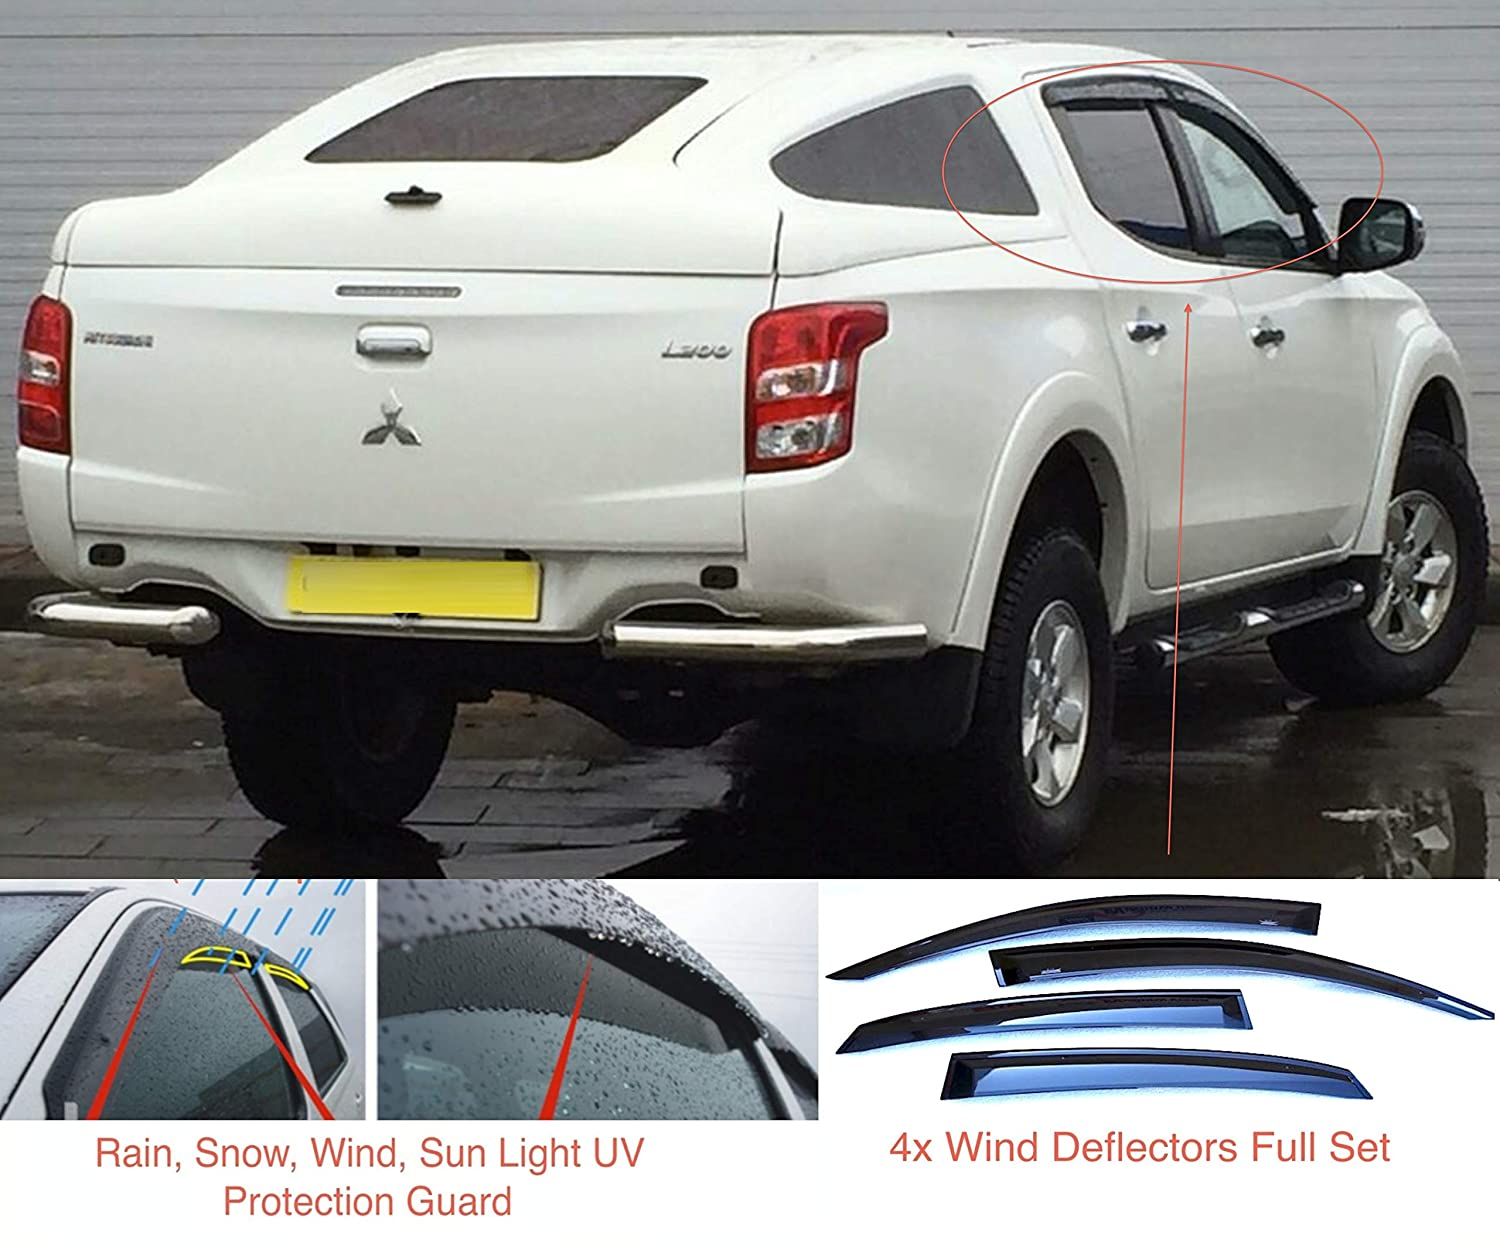 present 4-door Double Cab Pickup Wind Deflectors Dark Smoke Tinted Acrylic Glass Door Side Windows Visors Rain Snow Sun Guards 4x Front Rear compatible with Mitsubishi L200 Triton Fiat Fullback 2015